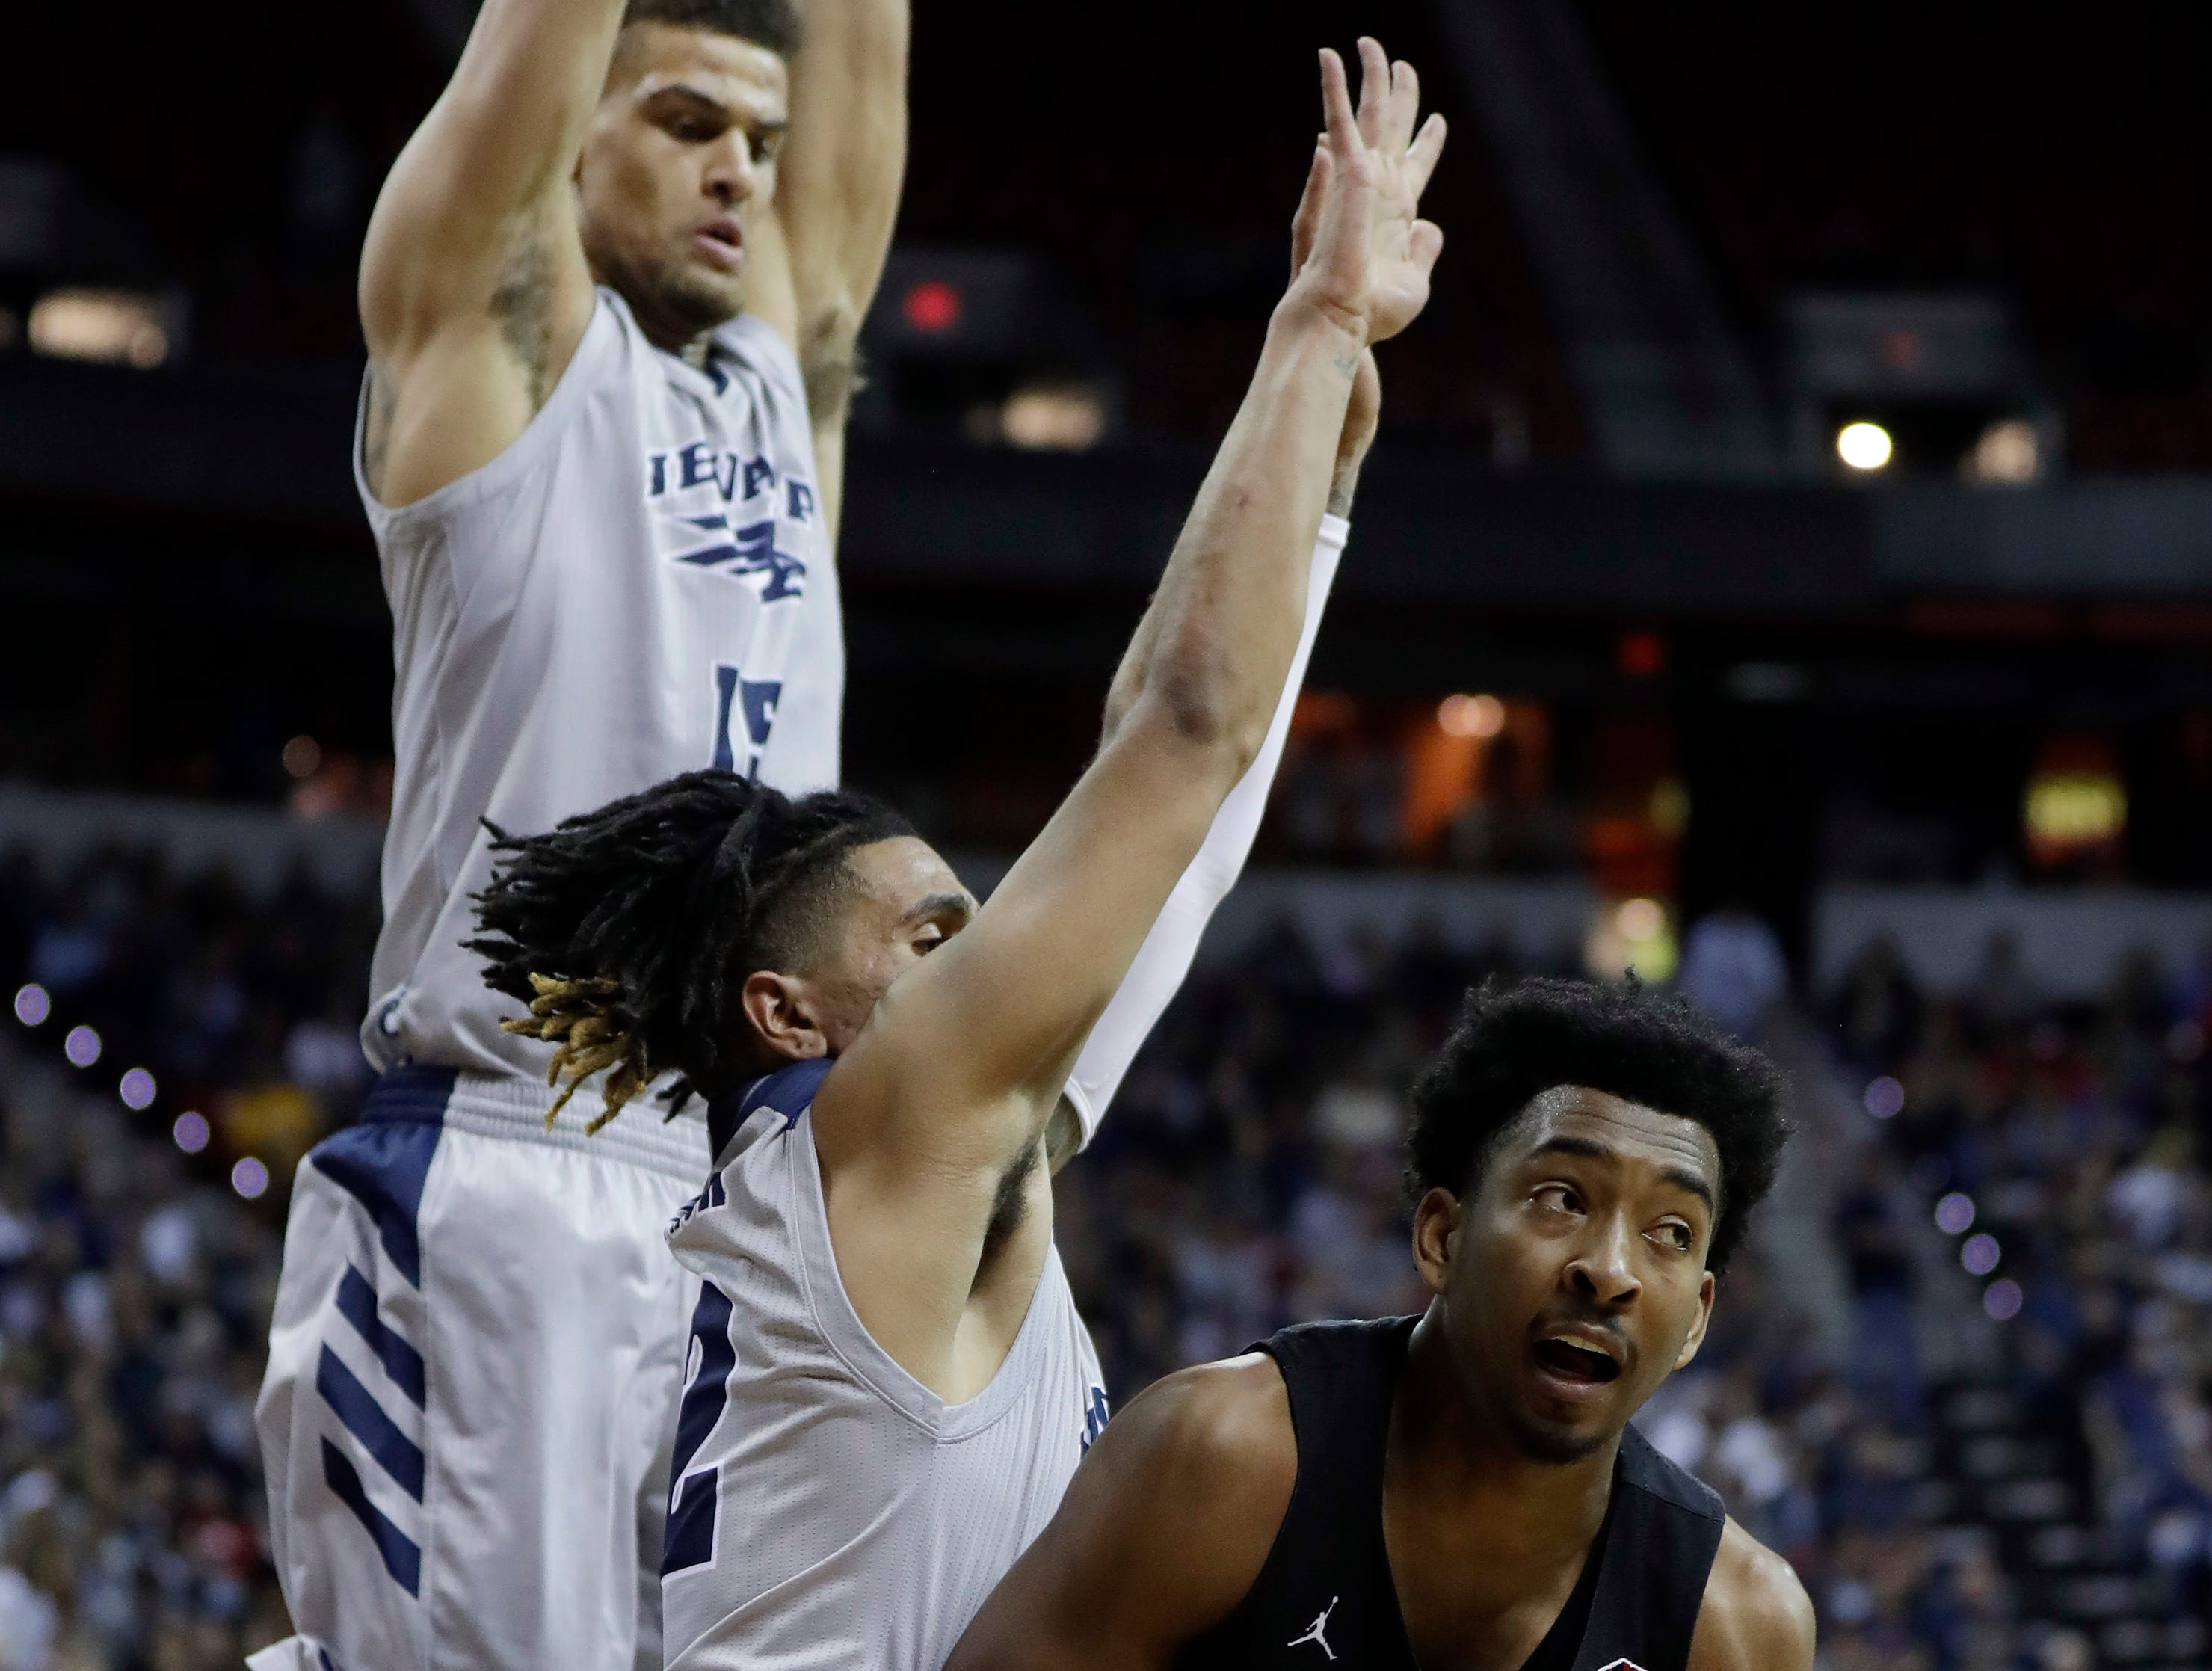 Nevada's Trey Porter (15) and Jazz Johnson (22) defend as San Diego State's Devin Watson looks to pass the ball during the second half of an NCAA college basketball game in the Mountain West Conference men's tournament Friday, March 15, 2019, in Las Vegas. (AP Photo/Isaac Brekken)